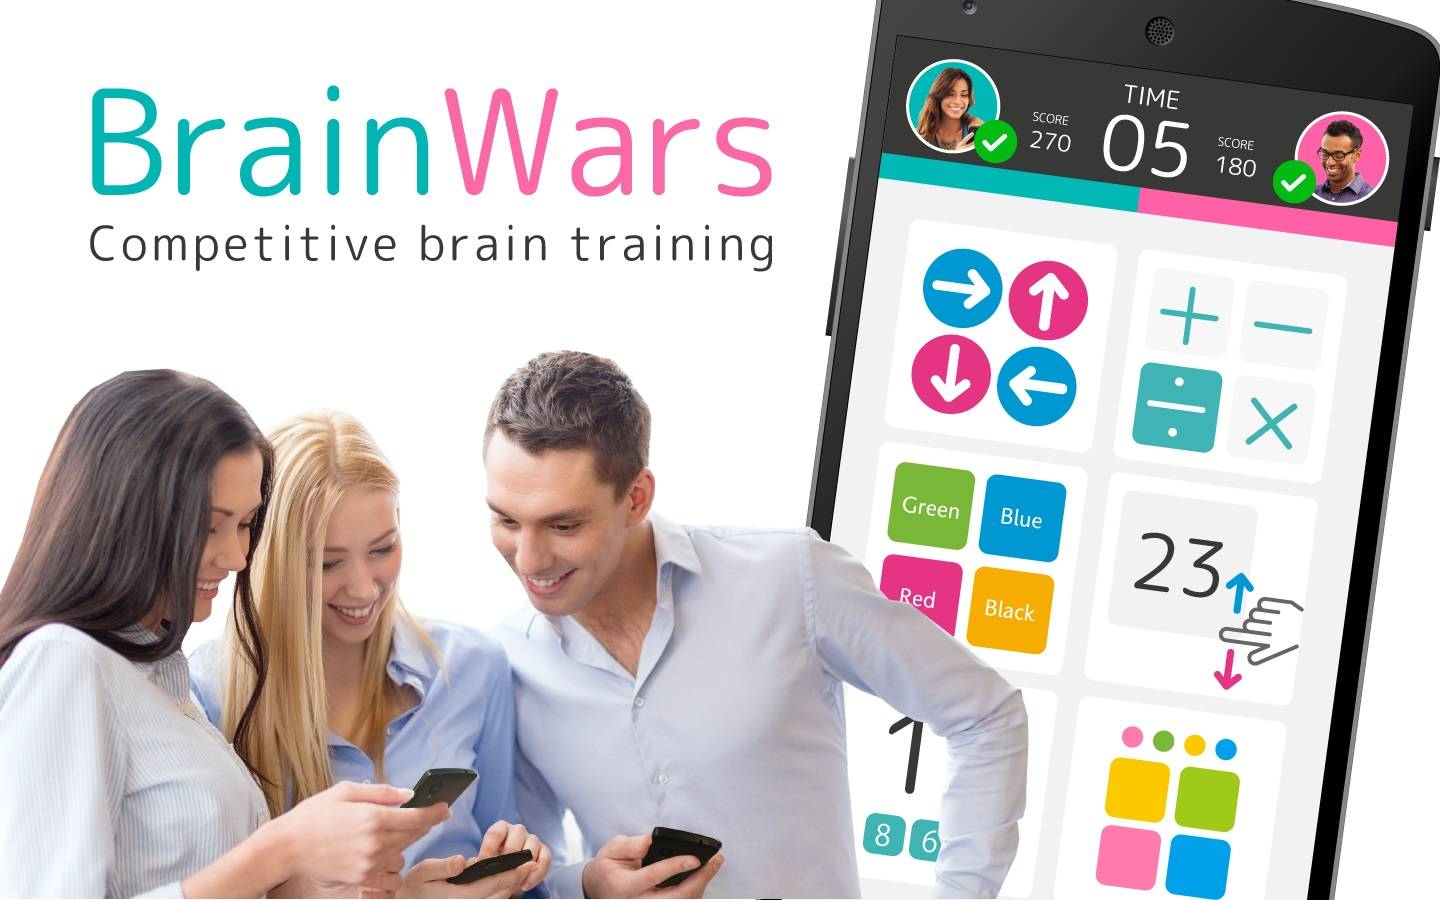 brain_wars_main